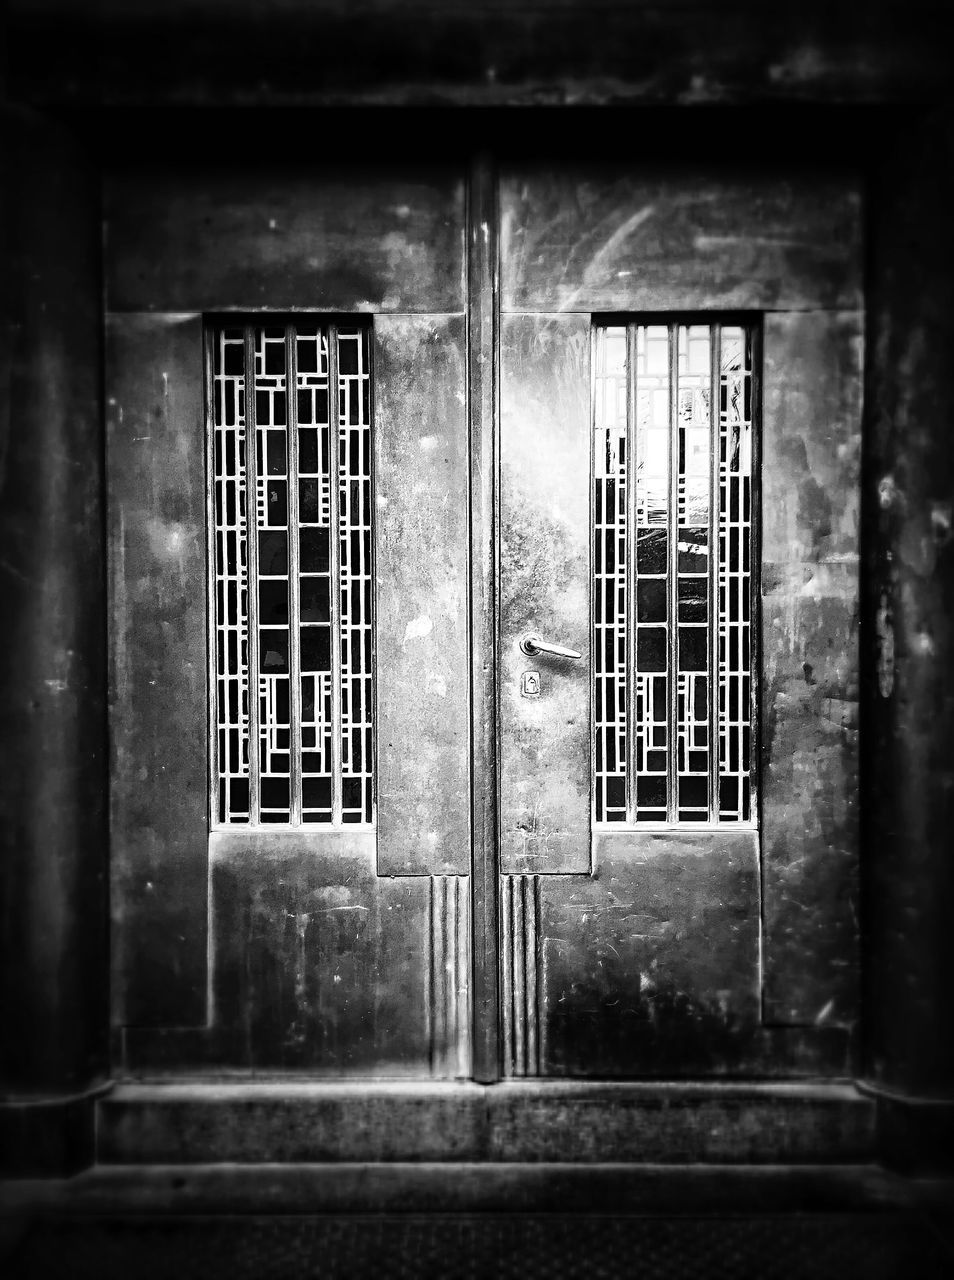 window, architecture, no people, door, built structure, indoors, building exterior, day, security bar, close-up